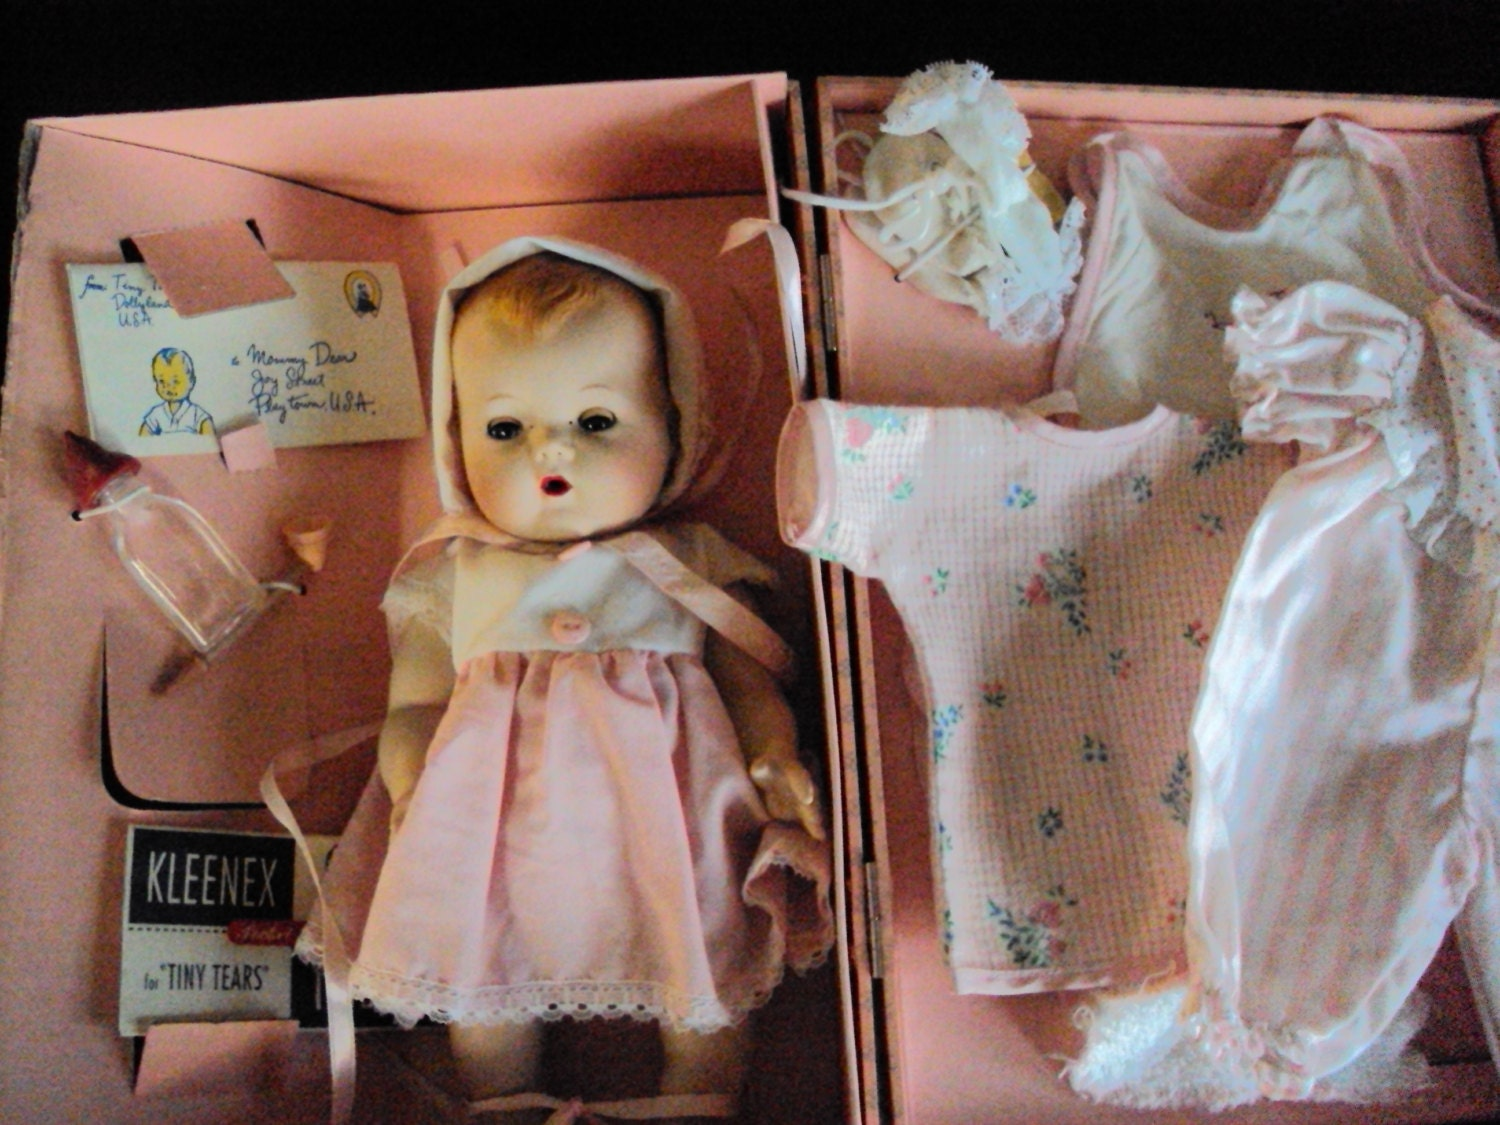 Vintage Tiny Tears Doll SALE By YRvisions On Etsy